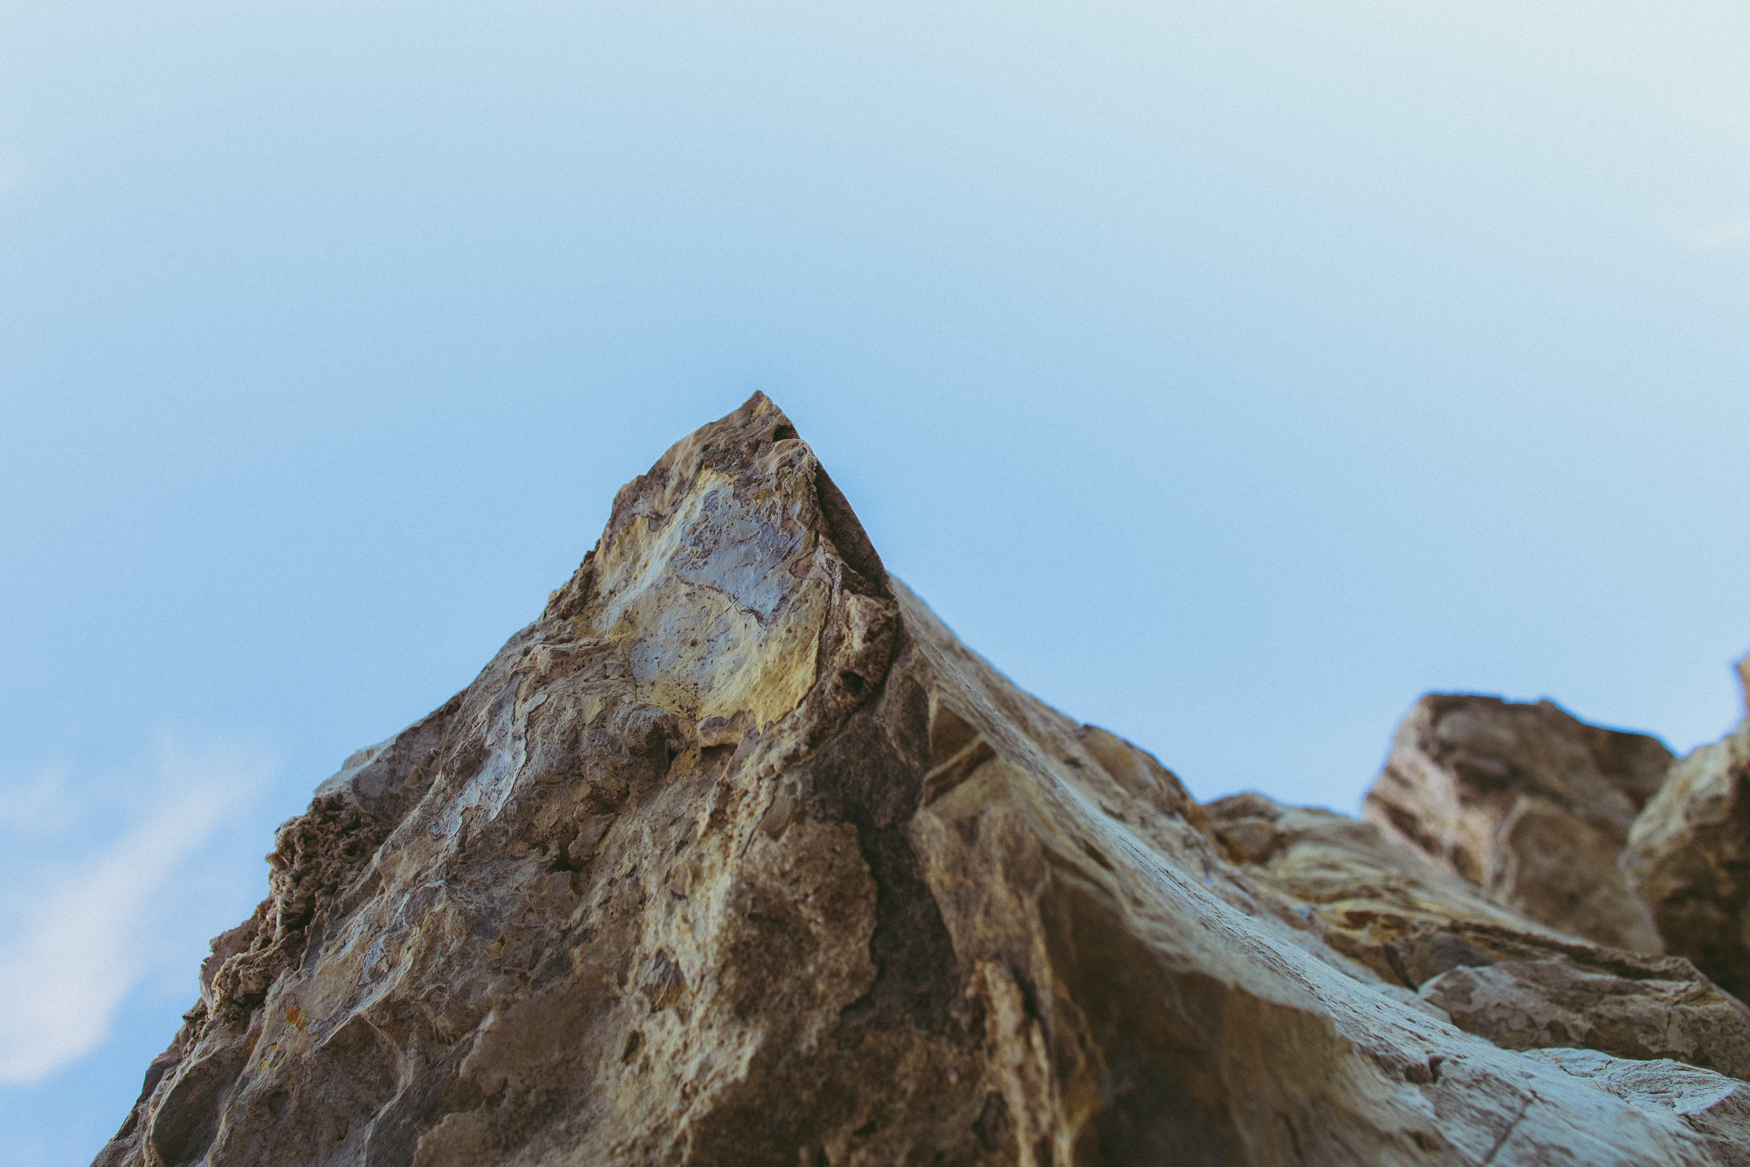 Pointy mountain, or upside down rock?